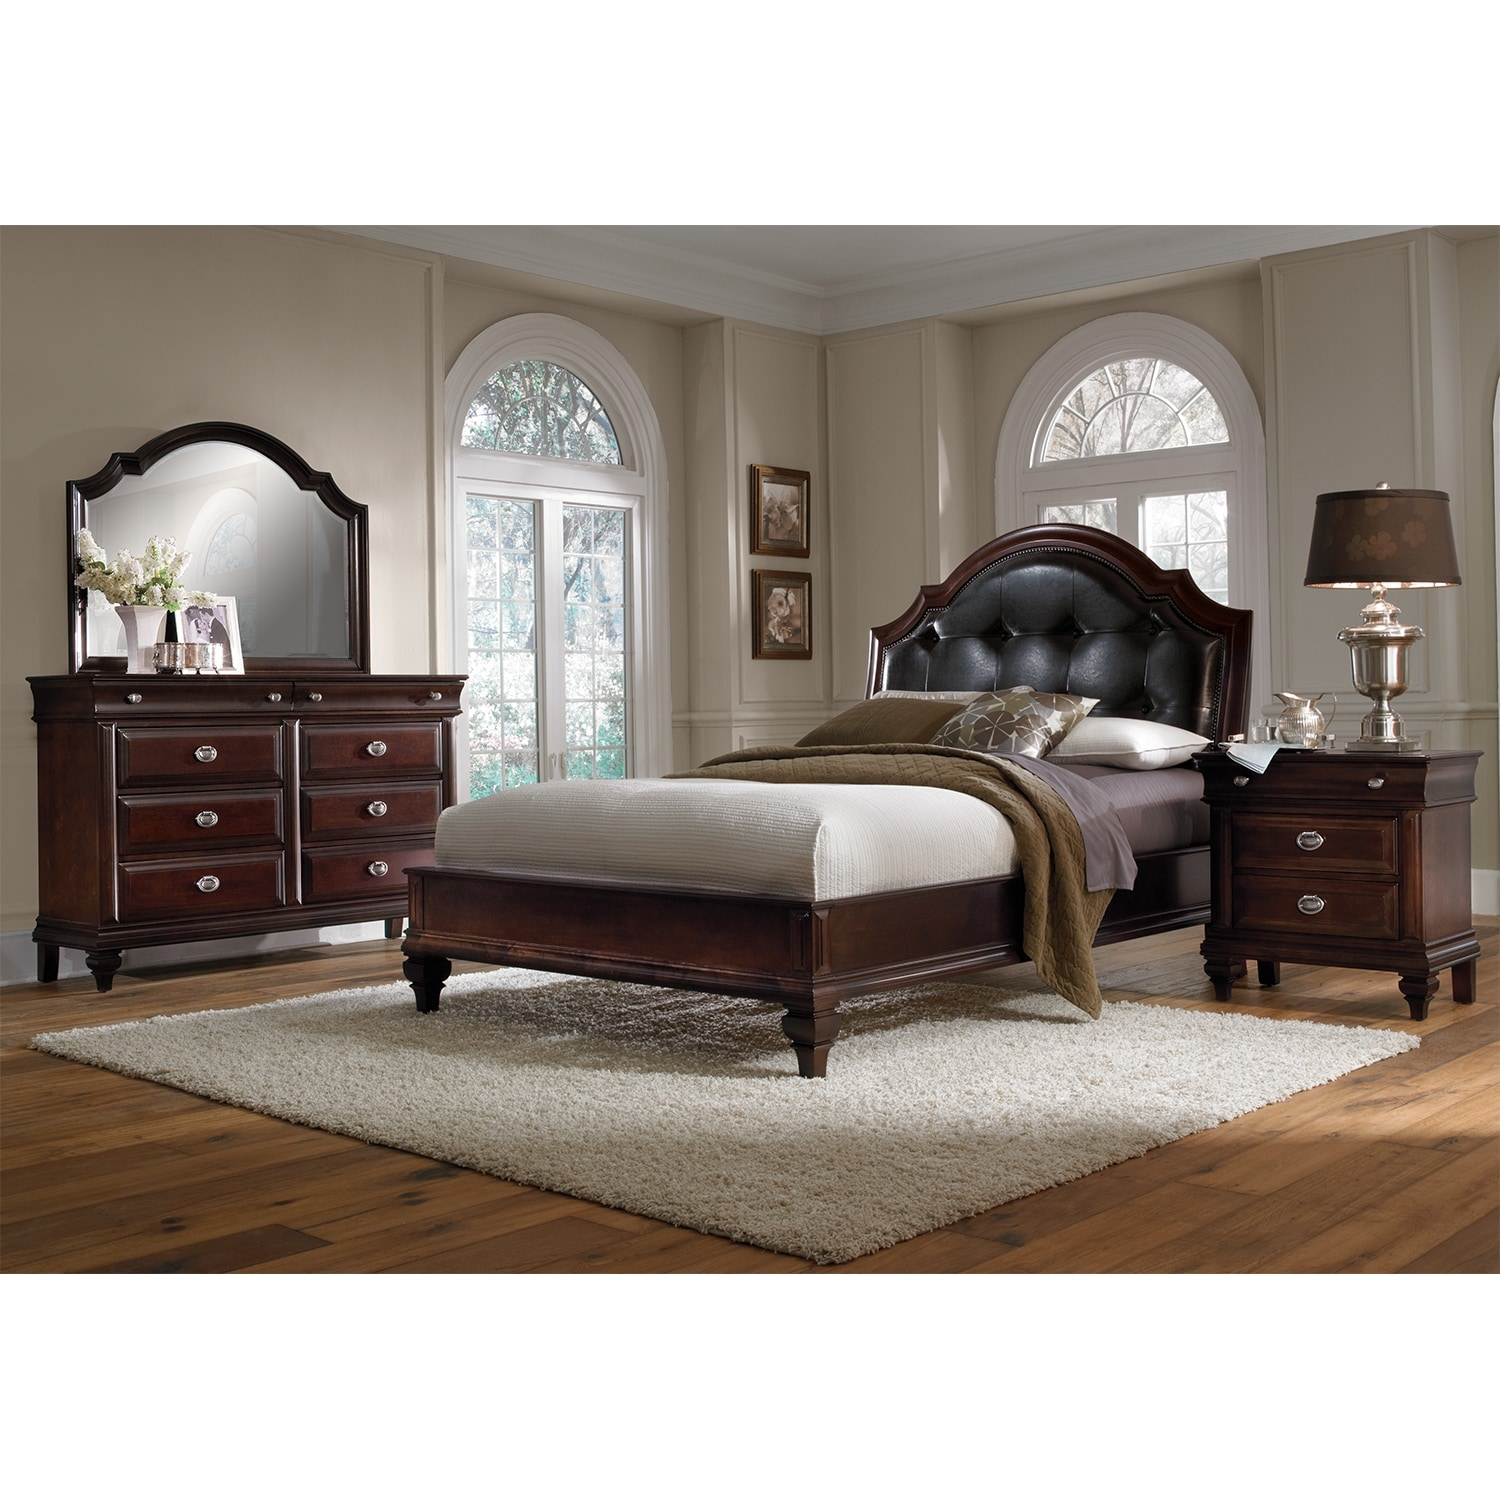 Manhattan 6-Piece Queen Bedroom Set - Cherry